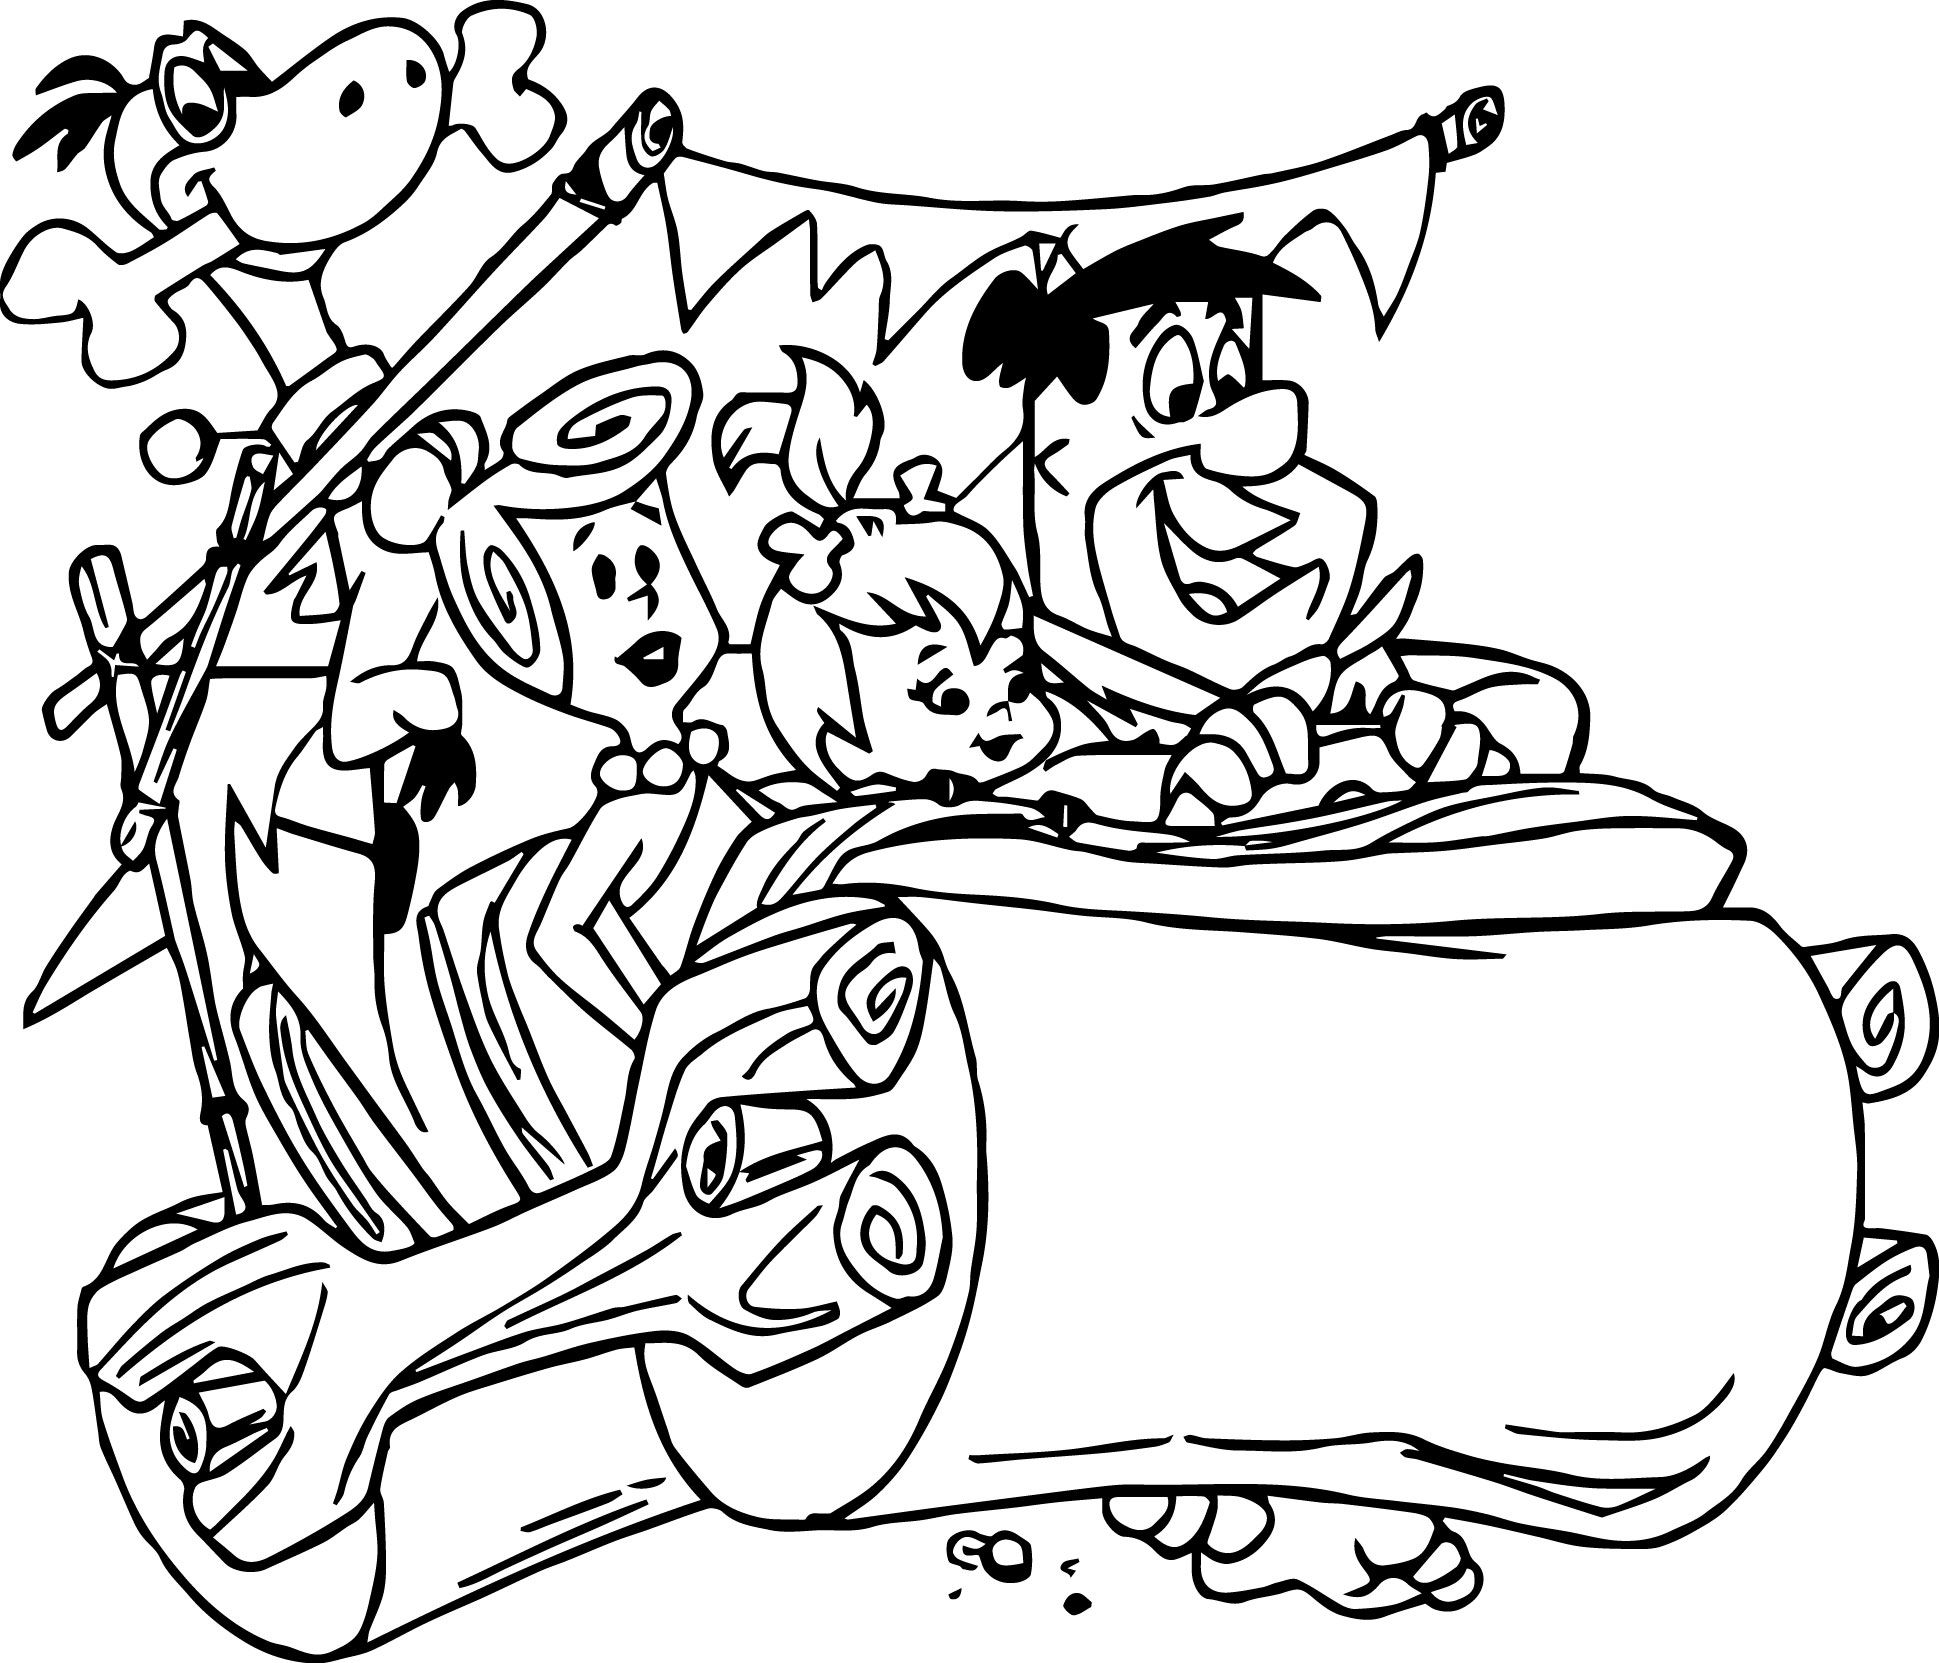 The Flintstones Coloring Pages Disney Coloring Pages Cartoon